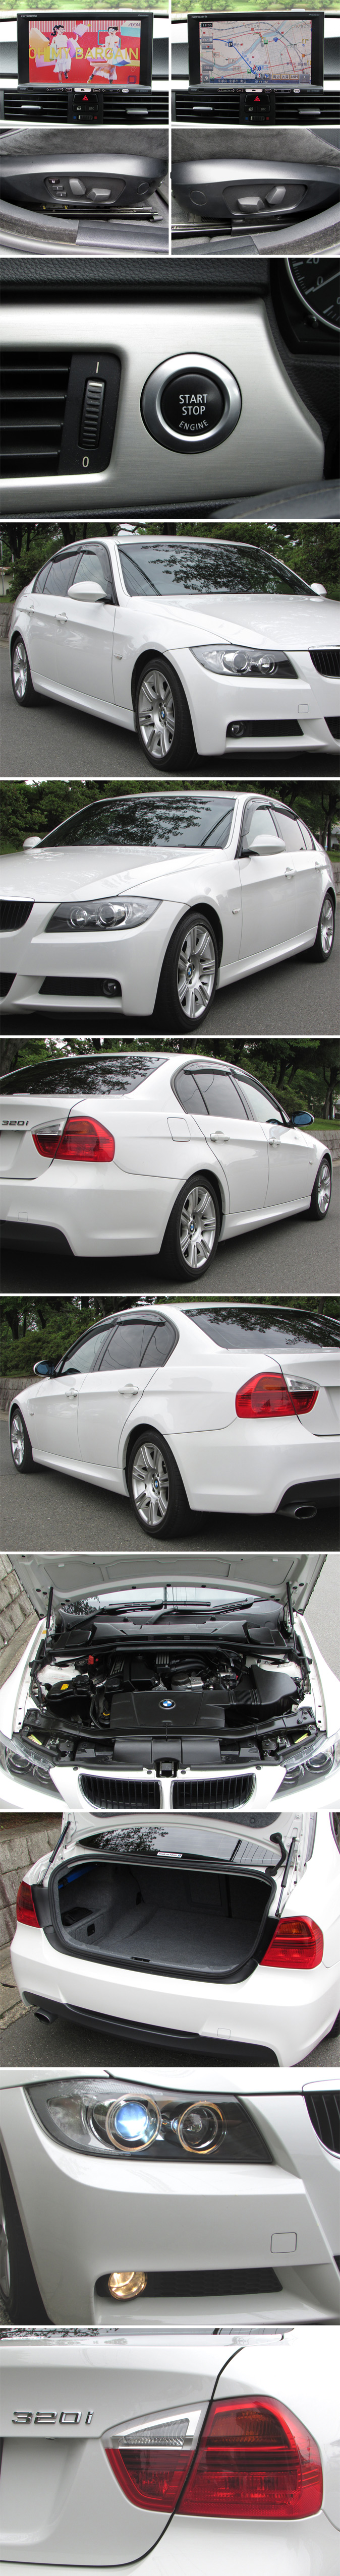 h20bmw320m_spo_hd02